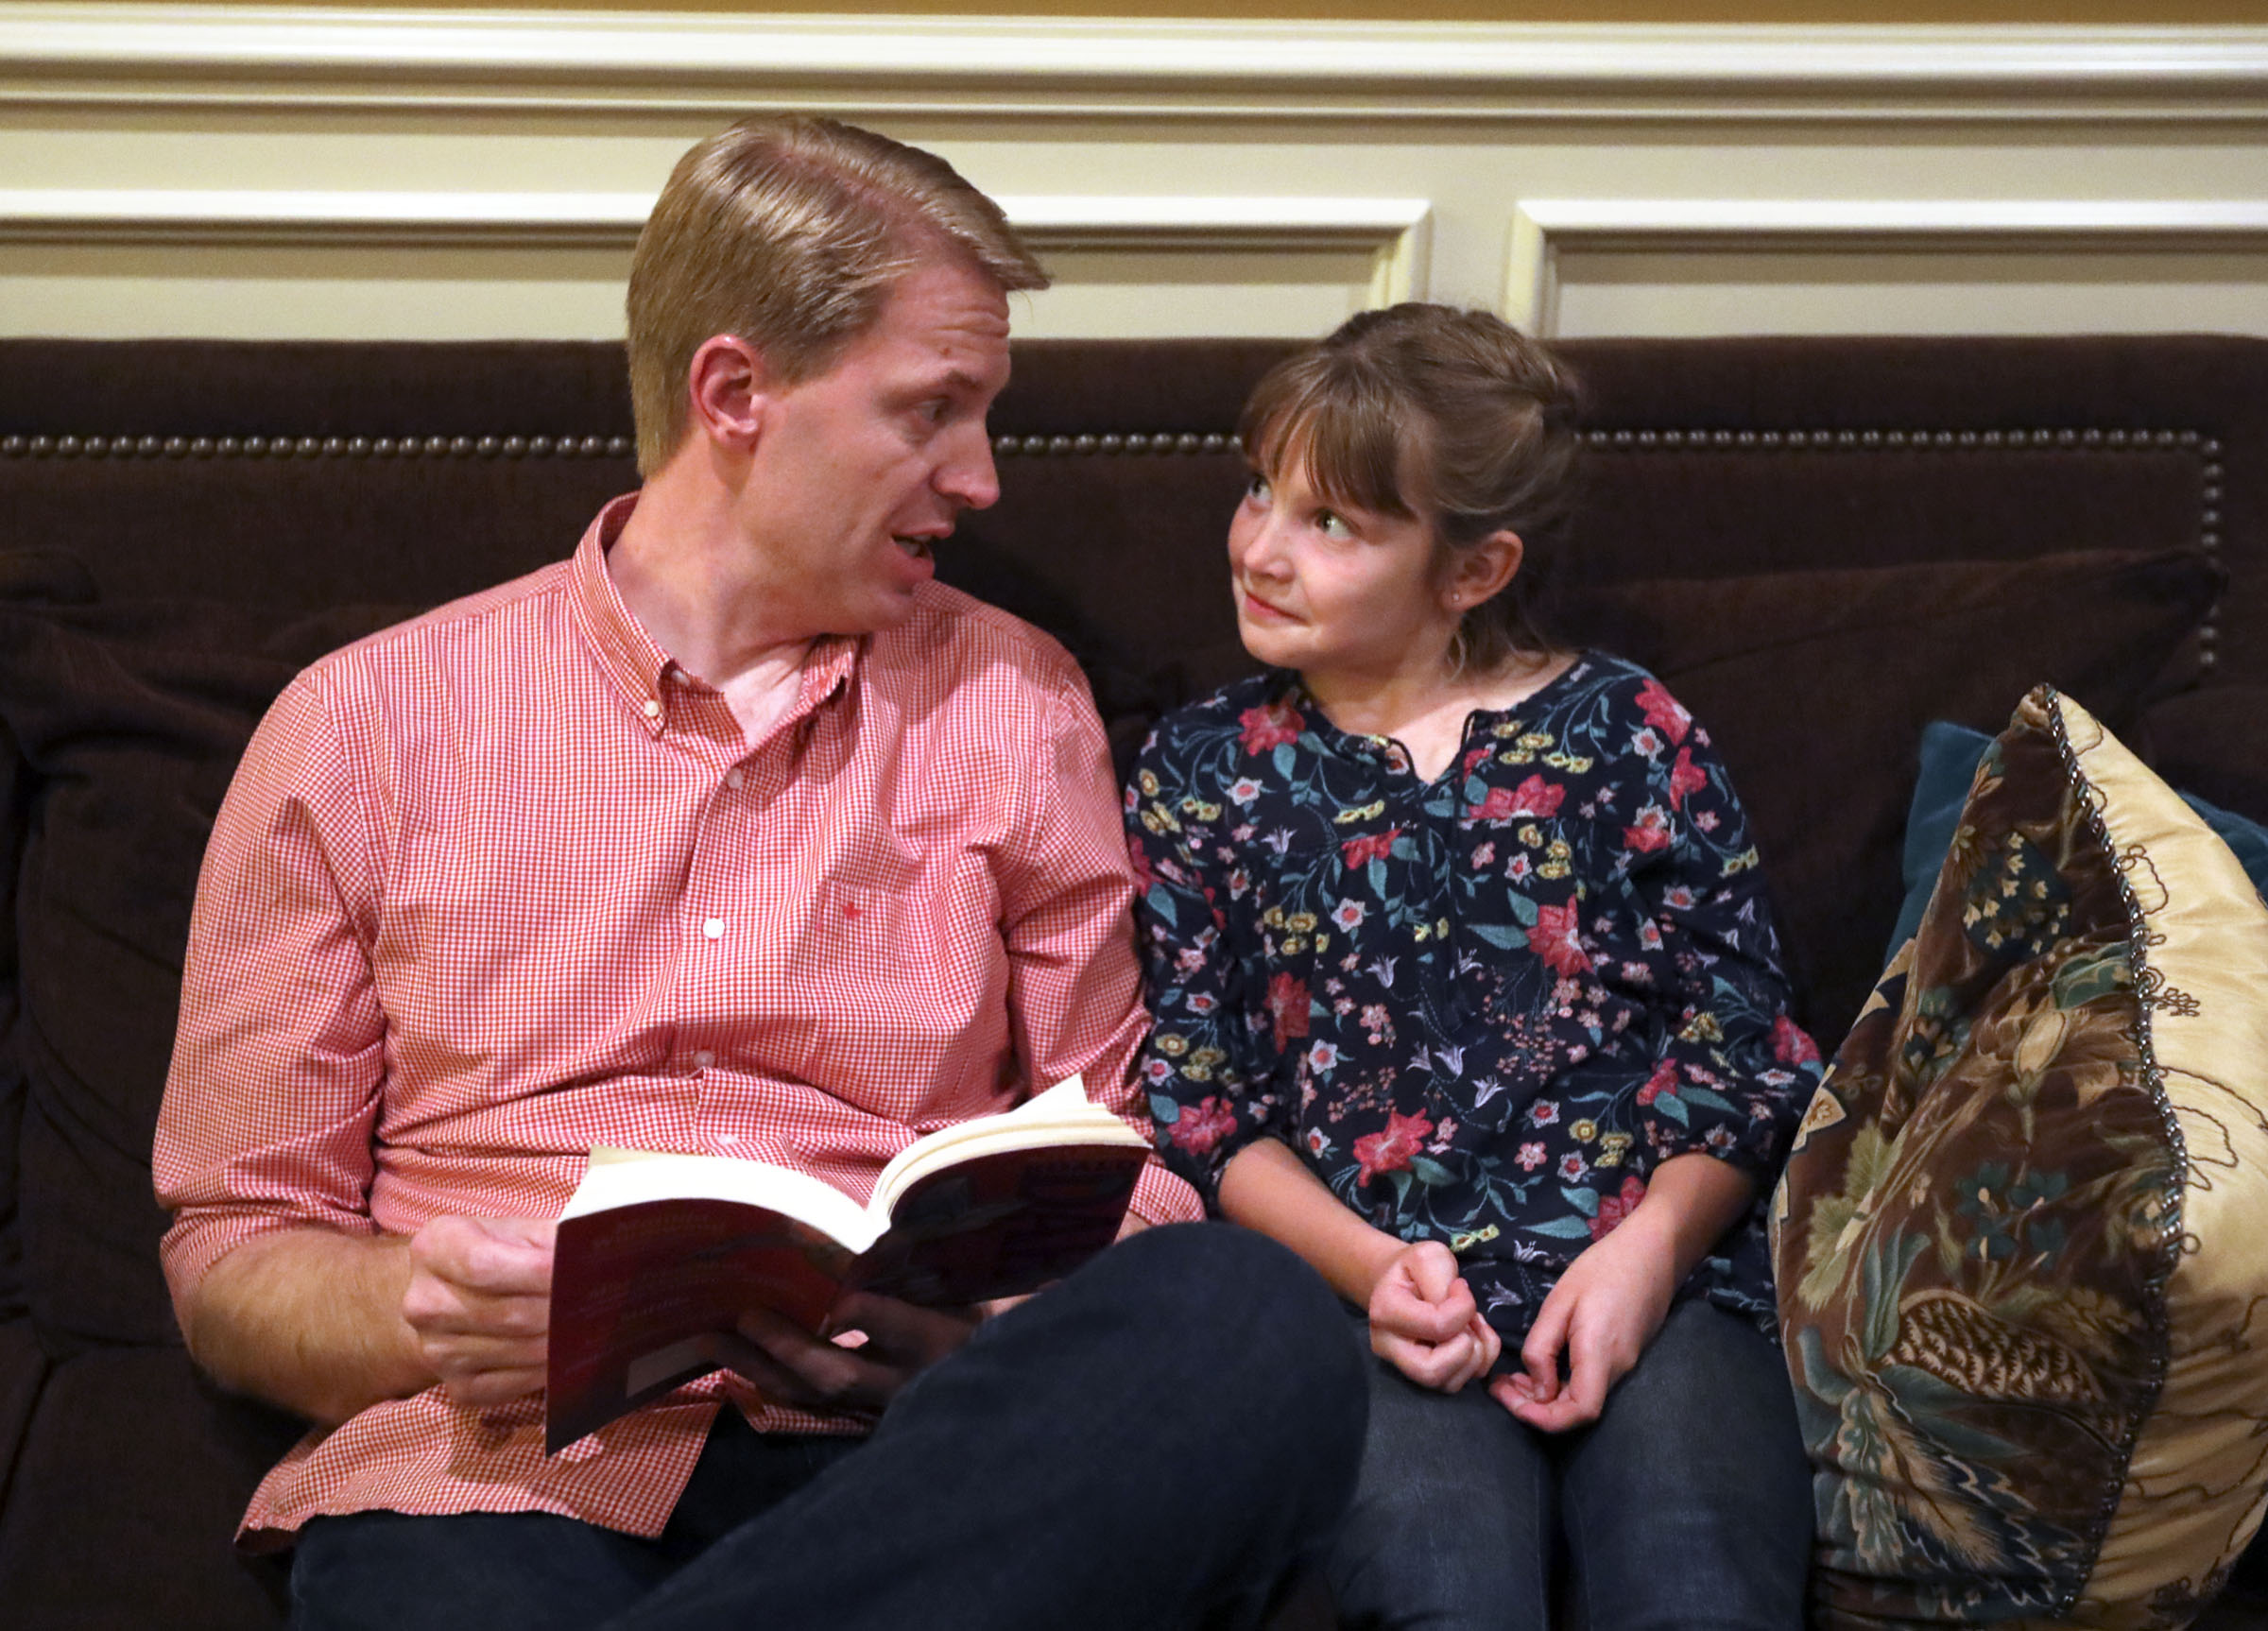 Justin Allen reads to his daughter Emilia Allen at home in Renton, Wash., on Friday, Sept. 14, 2018.